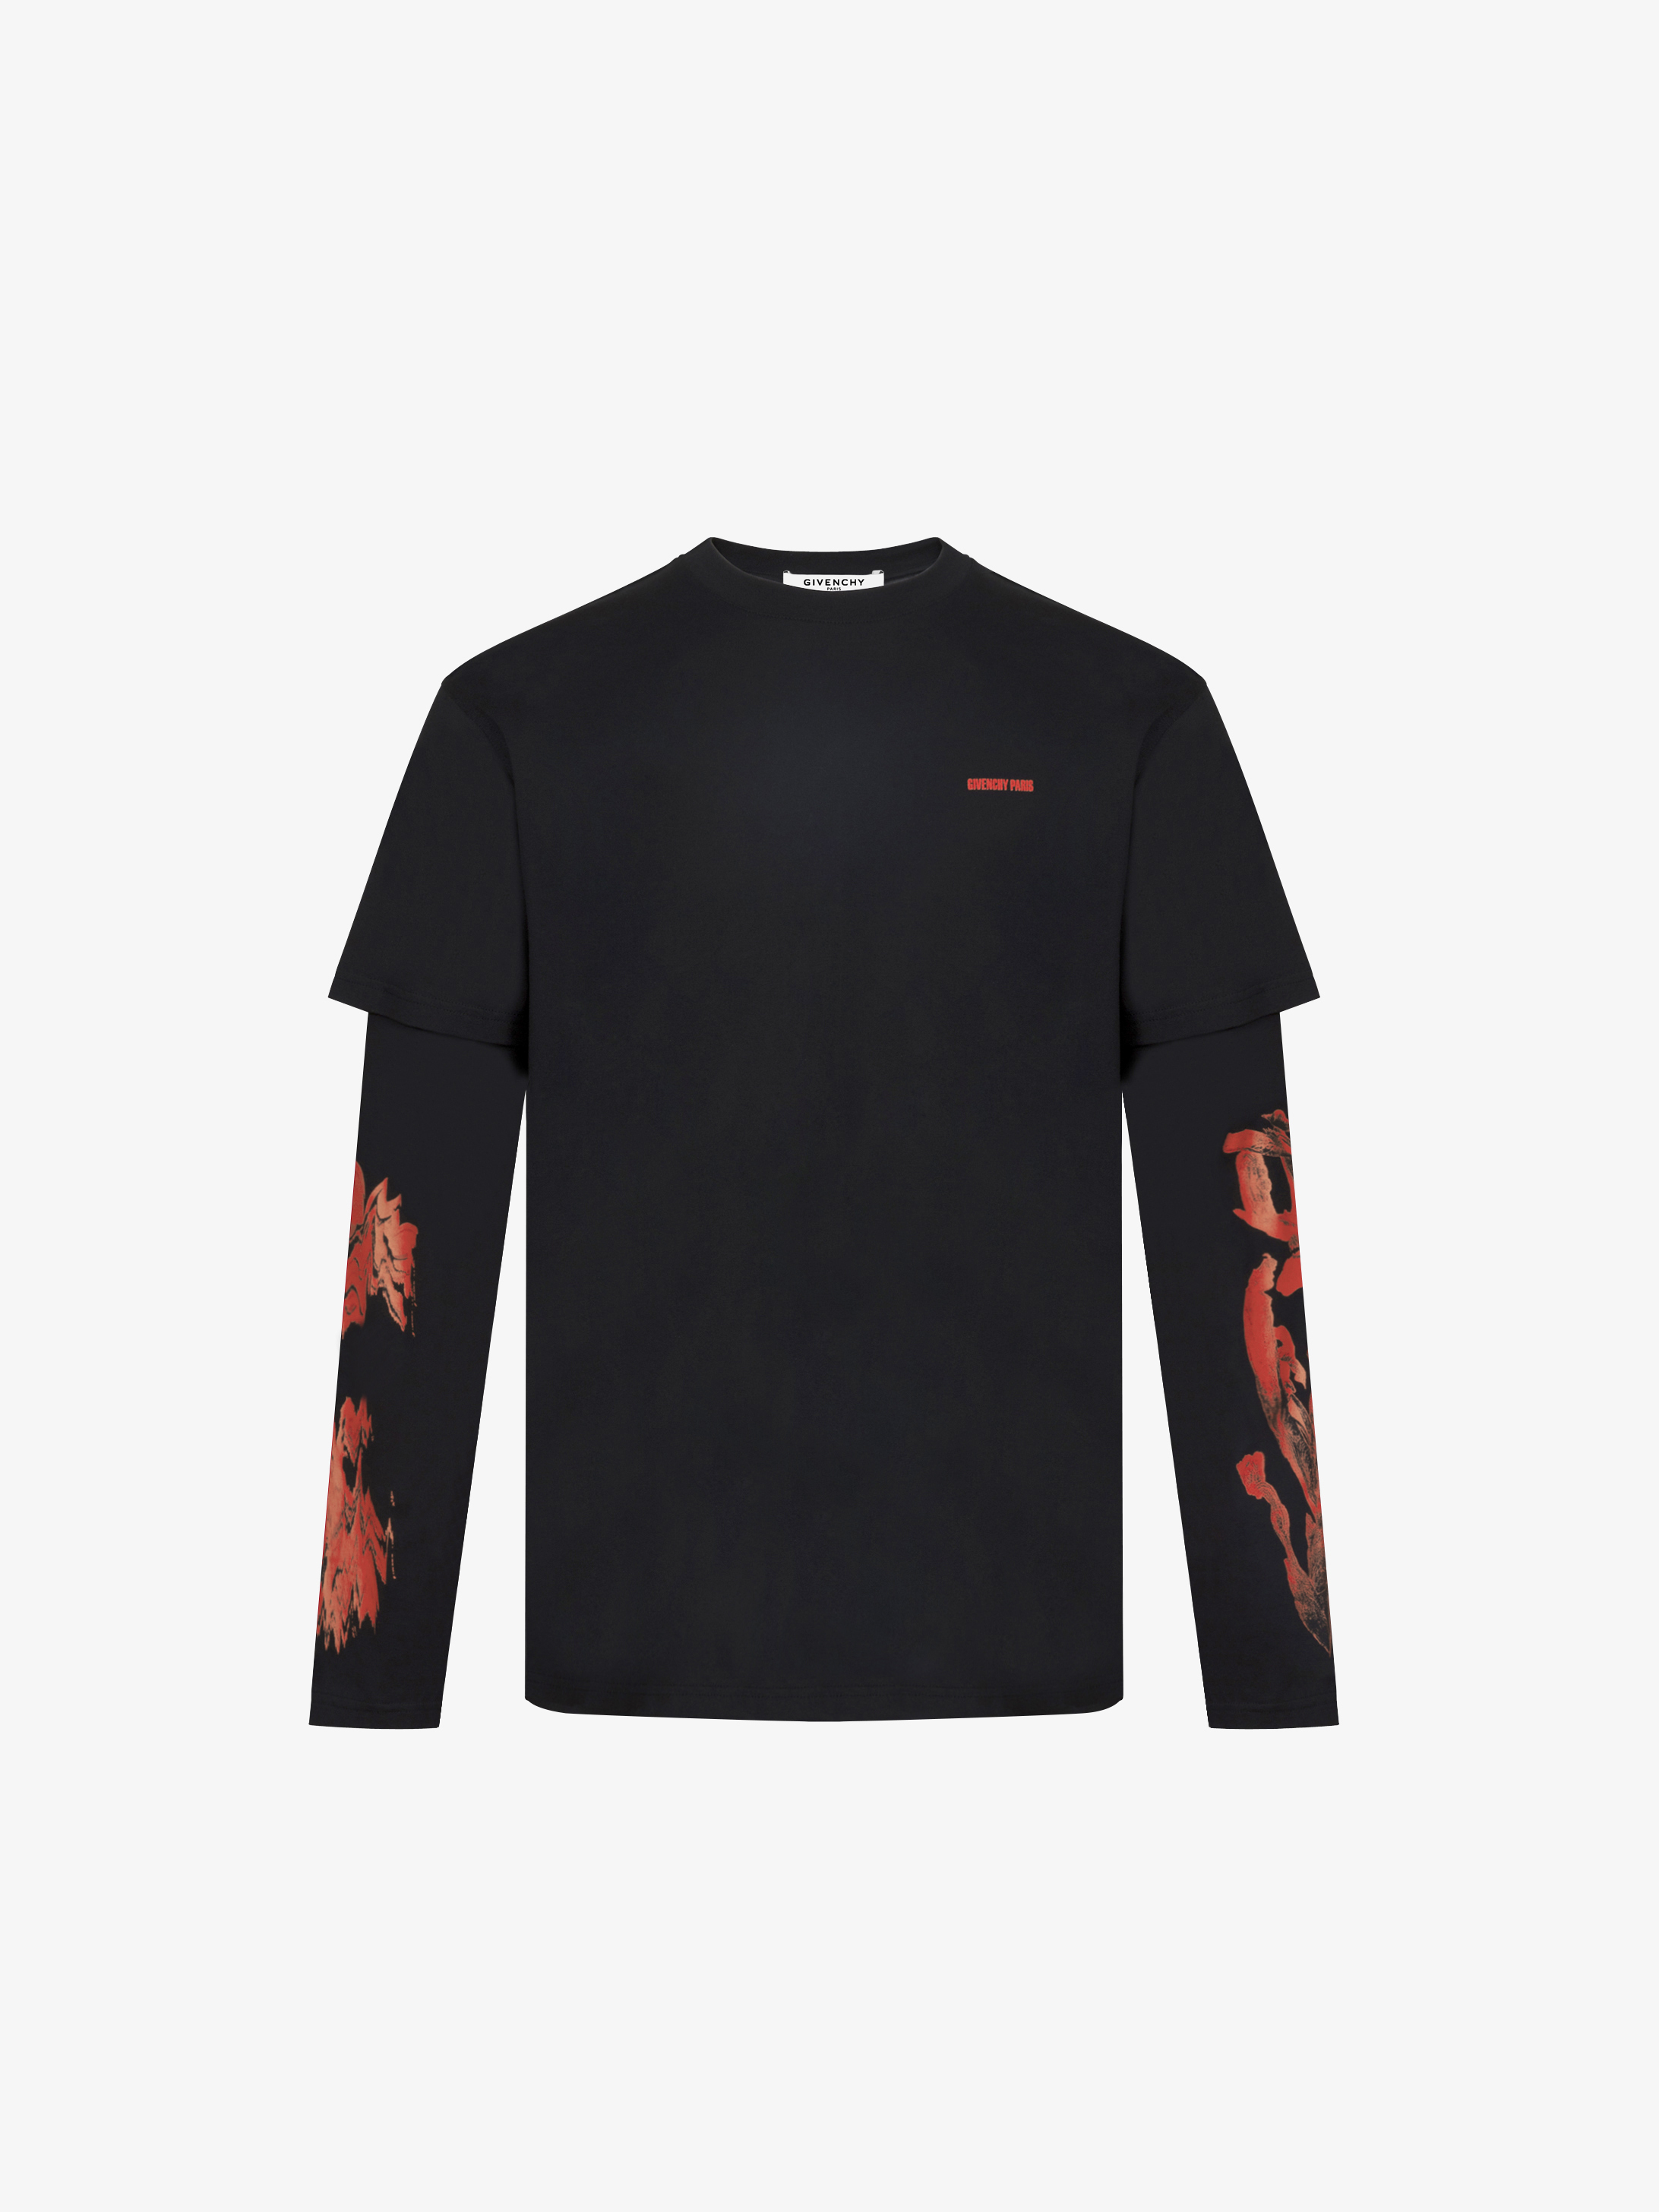 Roses printed double-sleeves T-Shirt